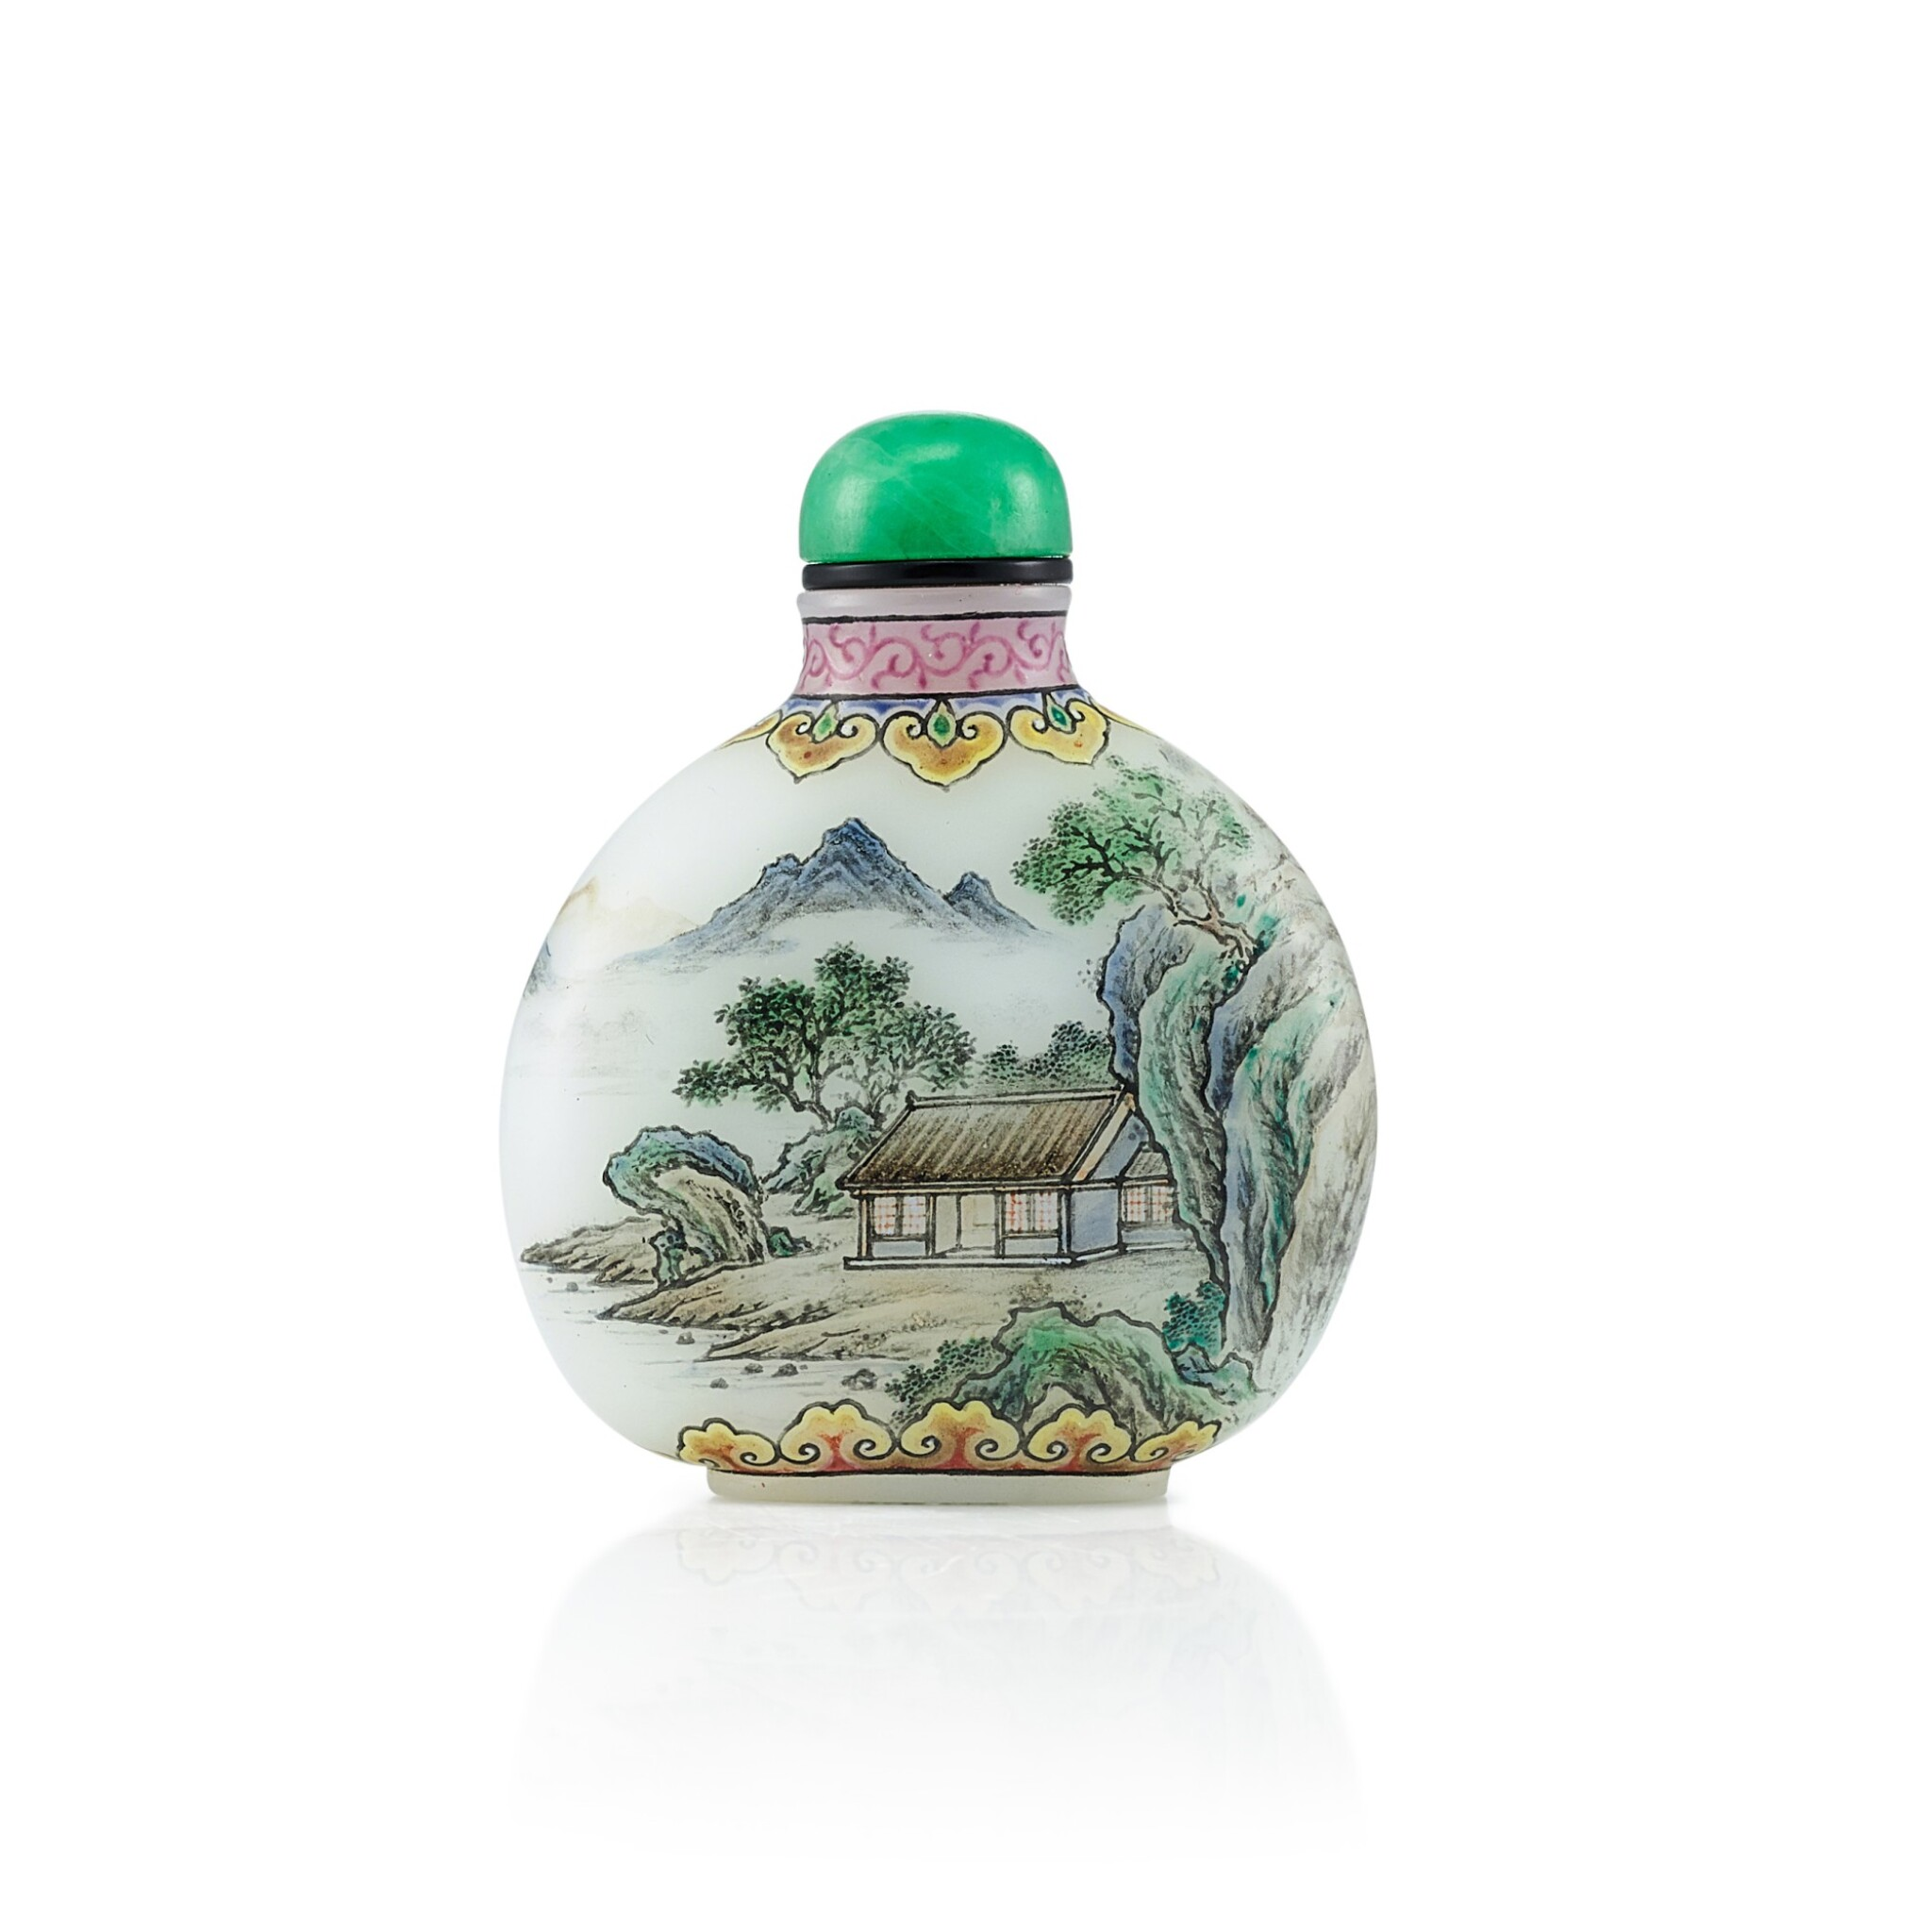 View full screen - View 1 of Lot 3011. An Enamel on White Glass 'Landscape' Snuff Bottle By Wang Xisan, Circa 1962-65 | 約1962-65年 王習三作料胎畫琺瑯山水圖鼻煙壺 《乾隆年製》仿款.